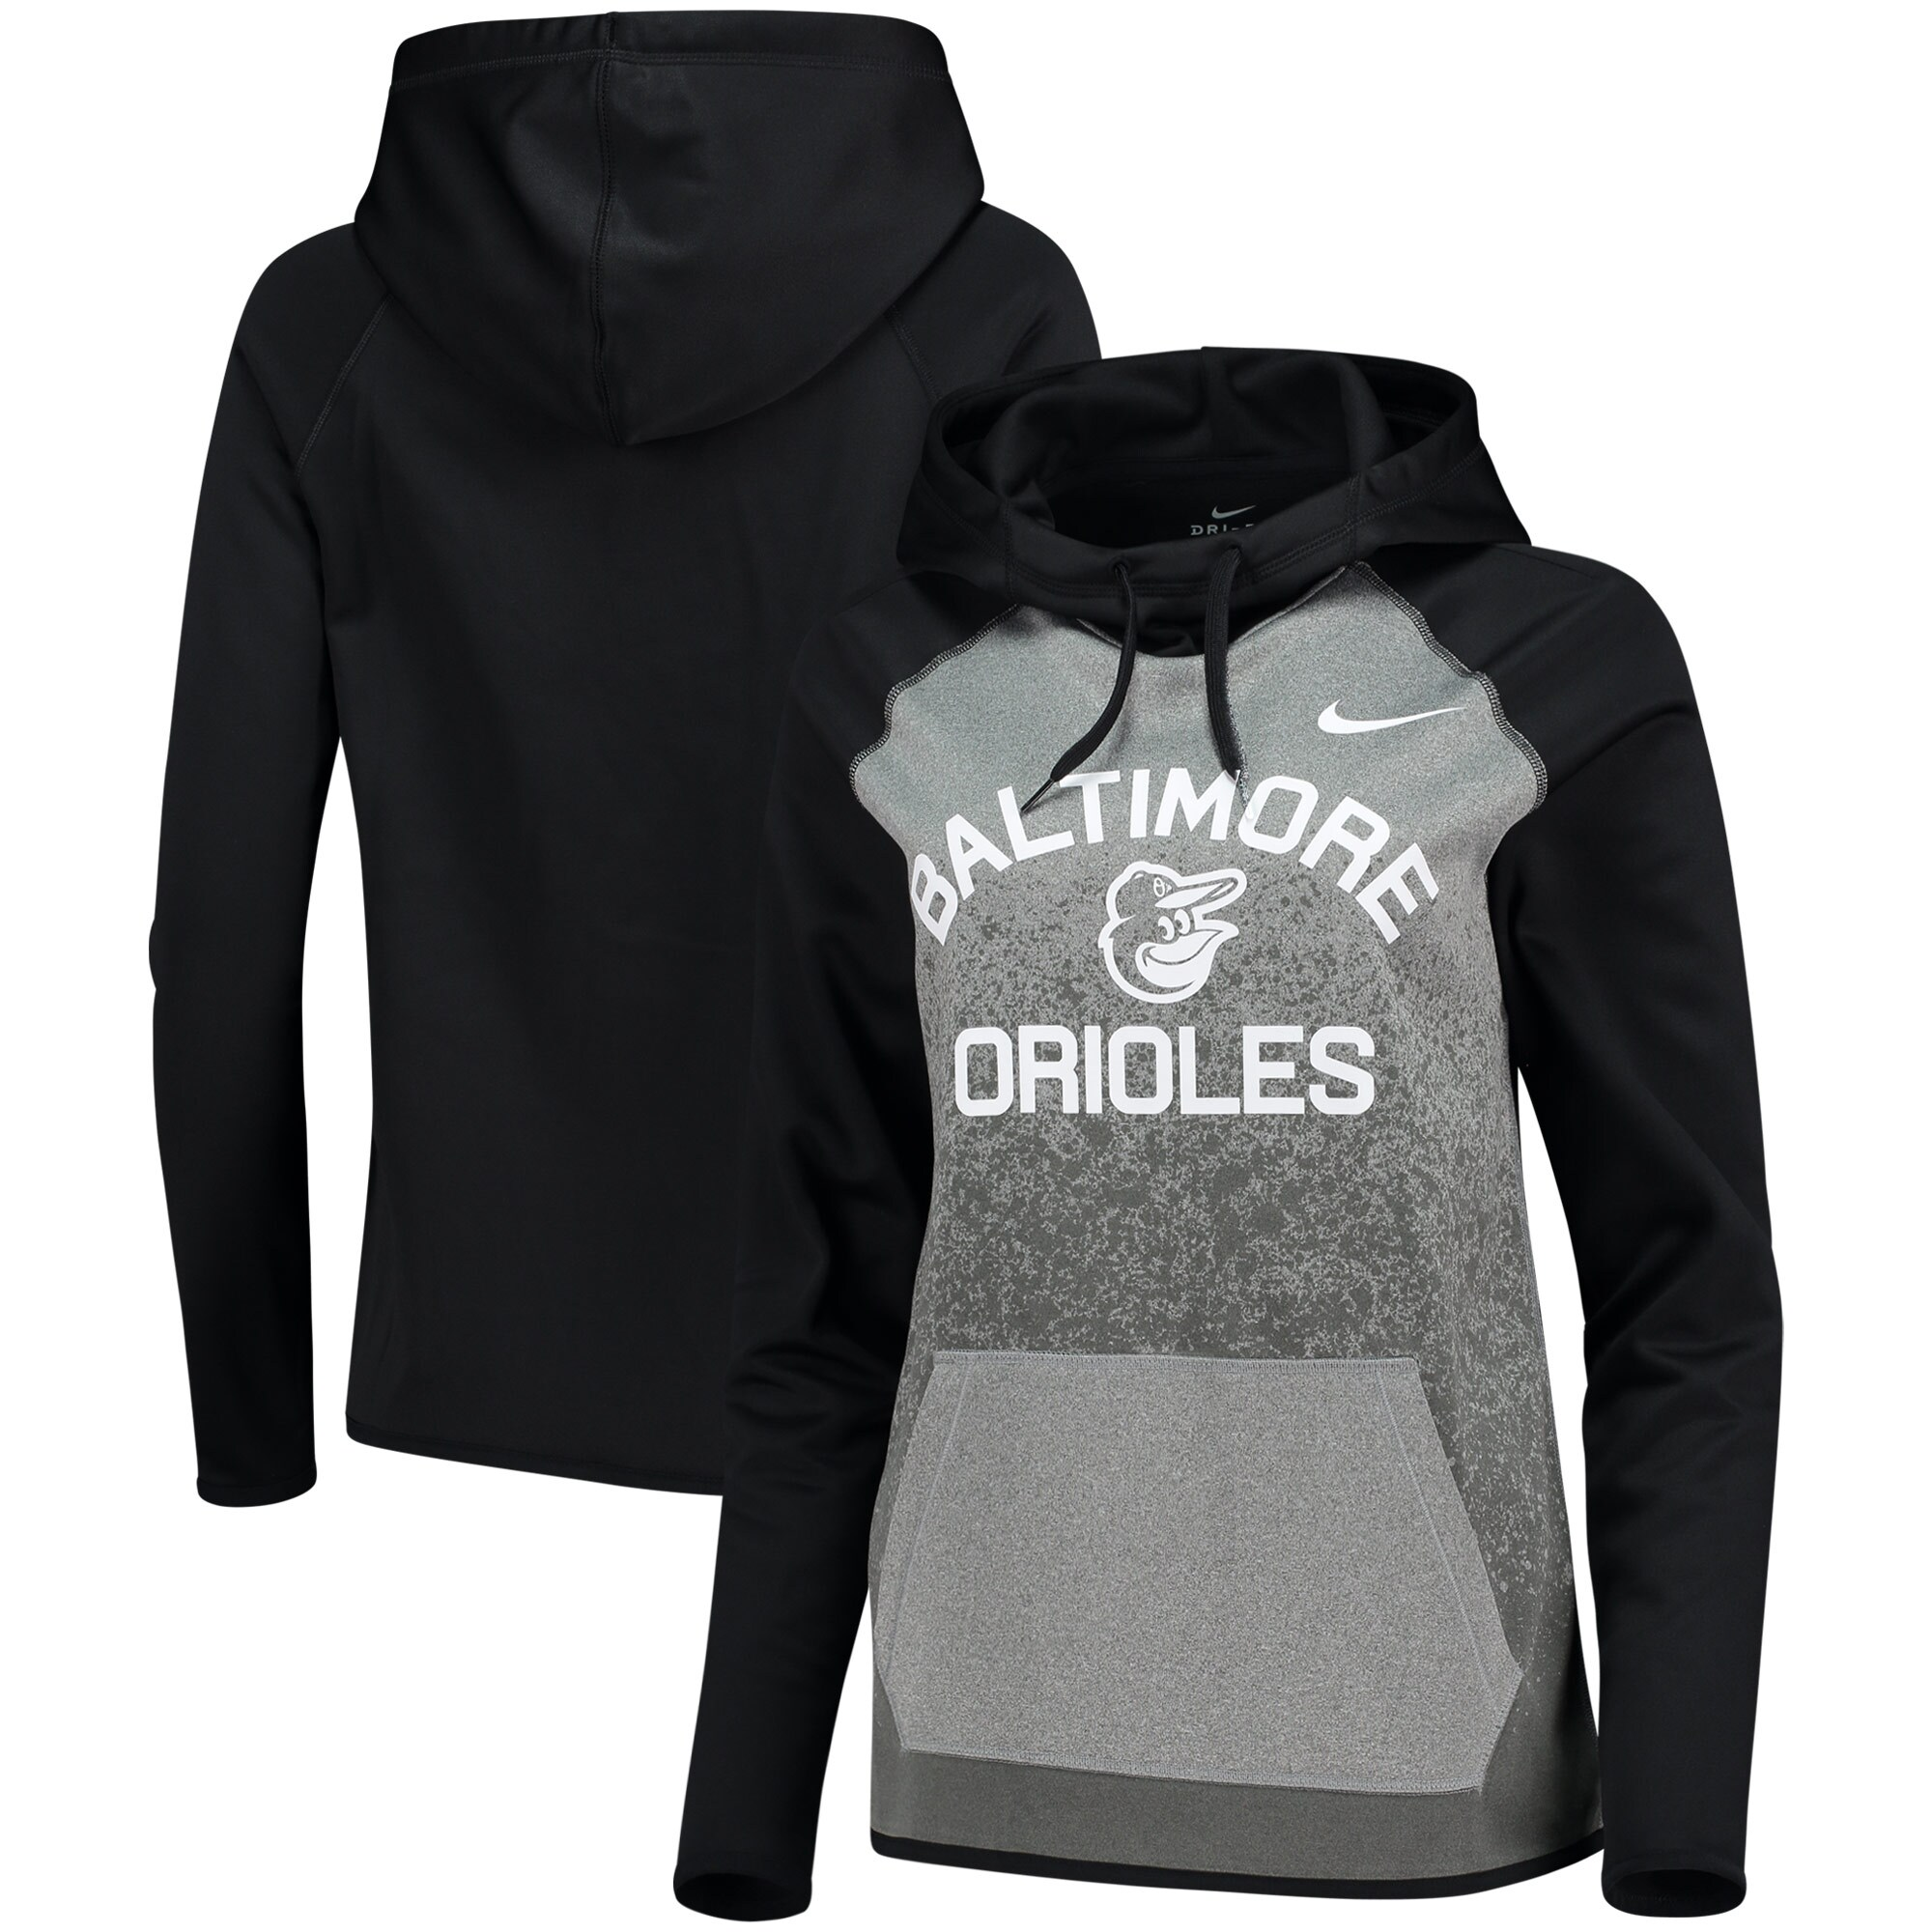 Baltimore Orioles Nike Women's All-Time Therma Performance Pullover Hoodie - Dark Gray